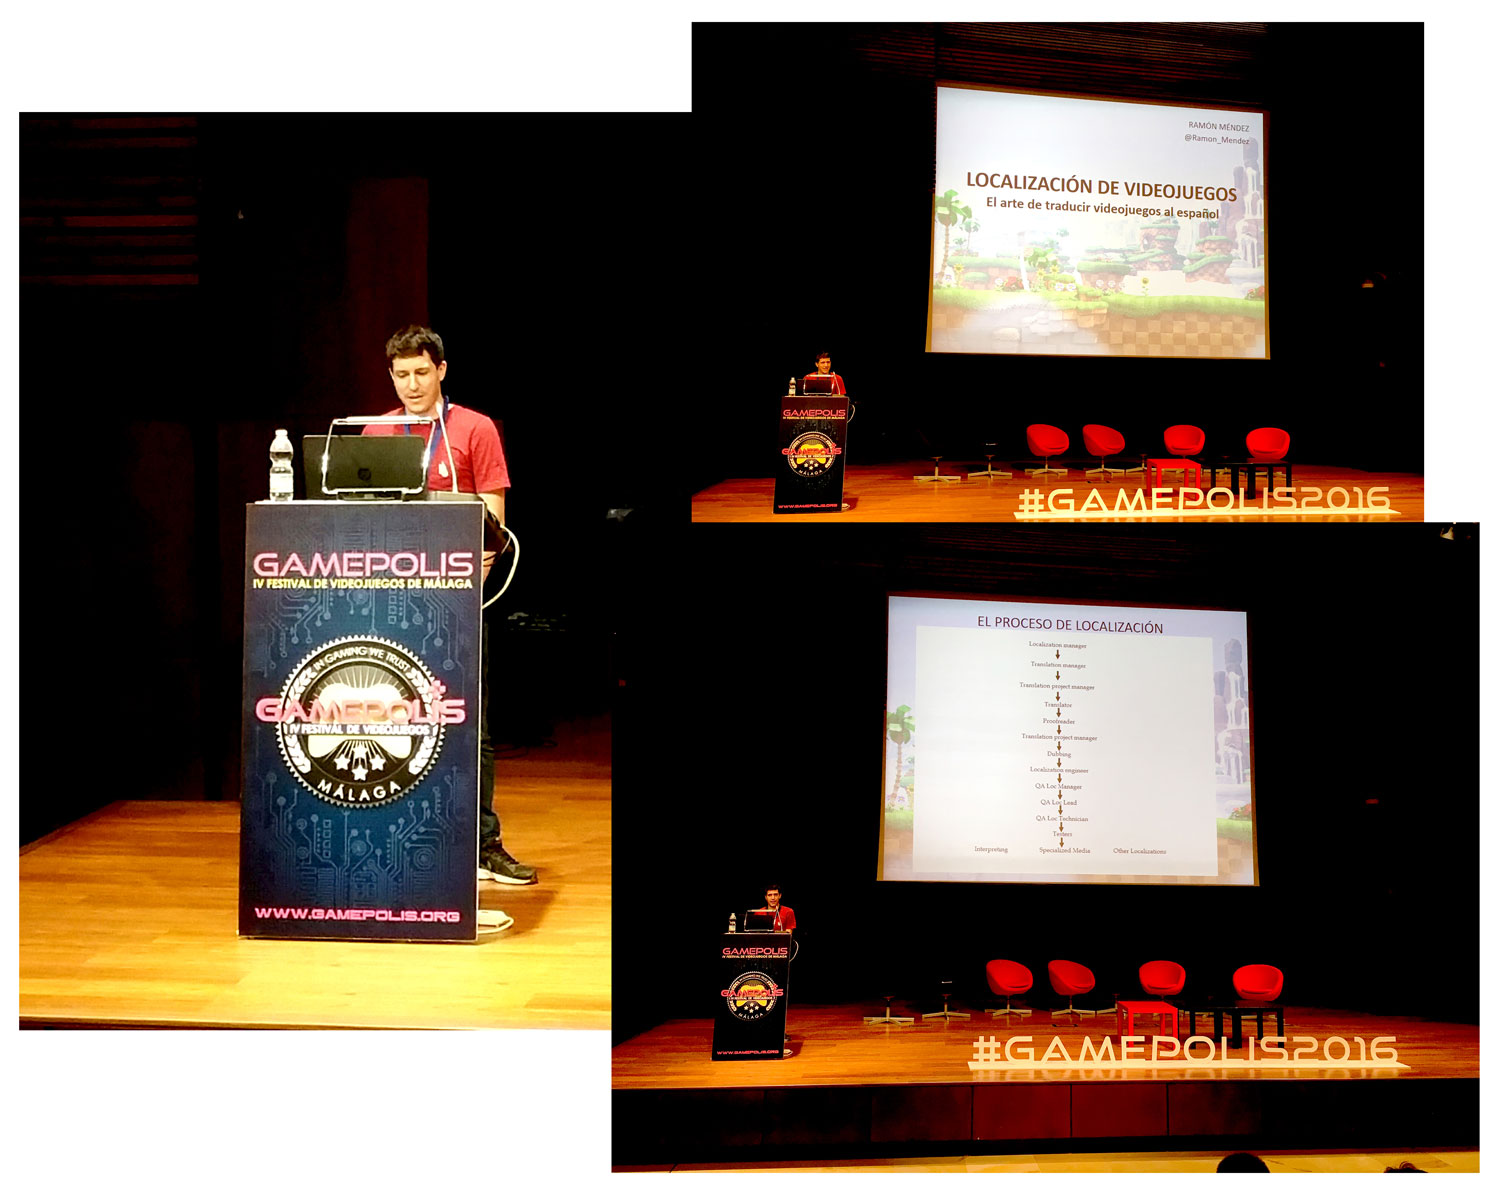 The professional translator Ramón Méndez in his talk about video game localization.